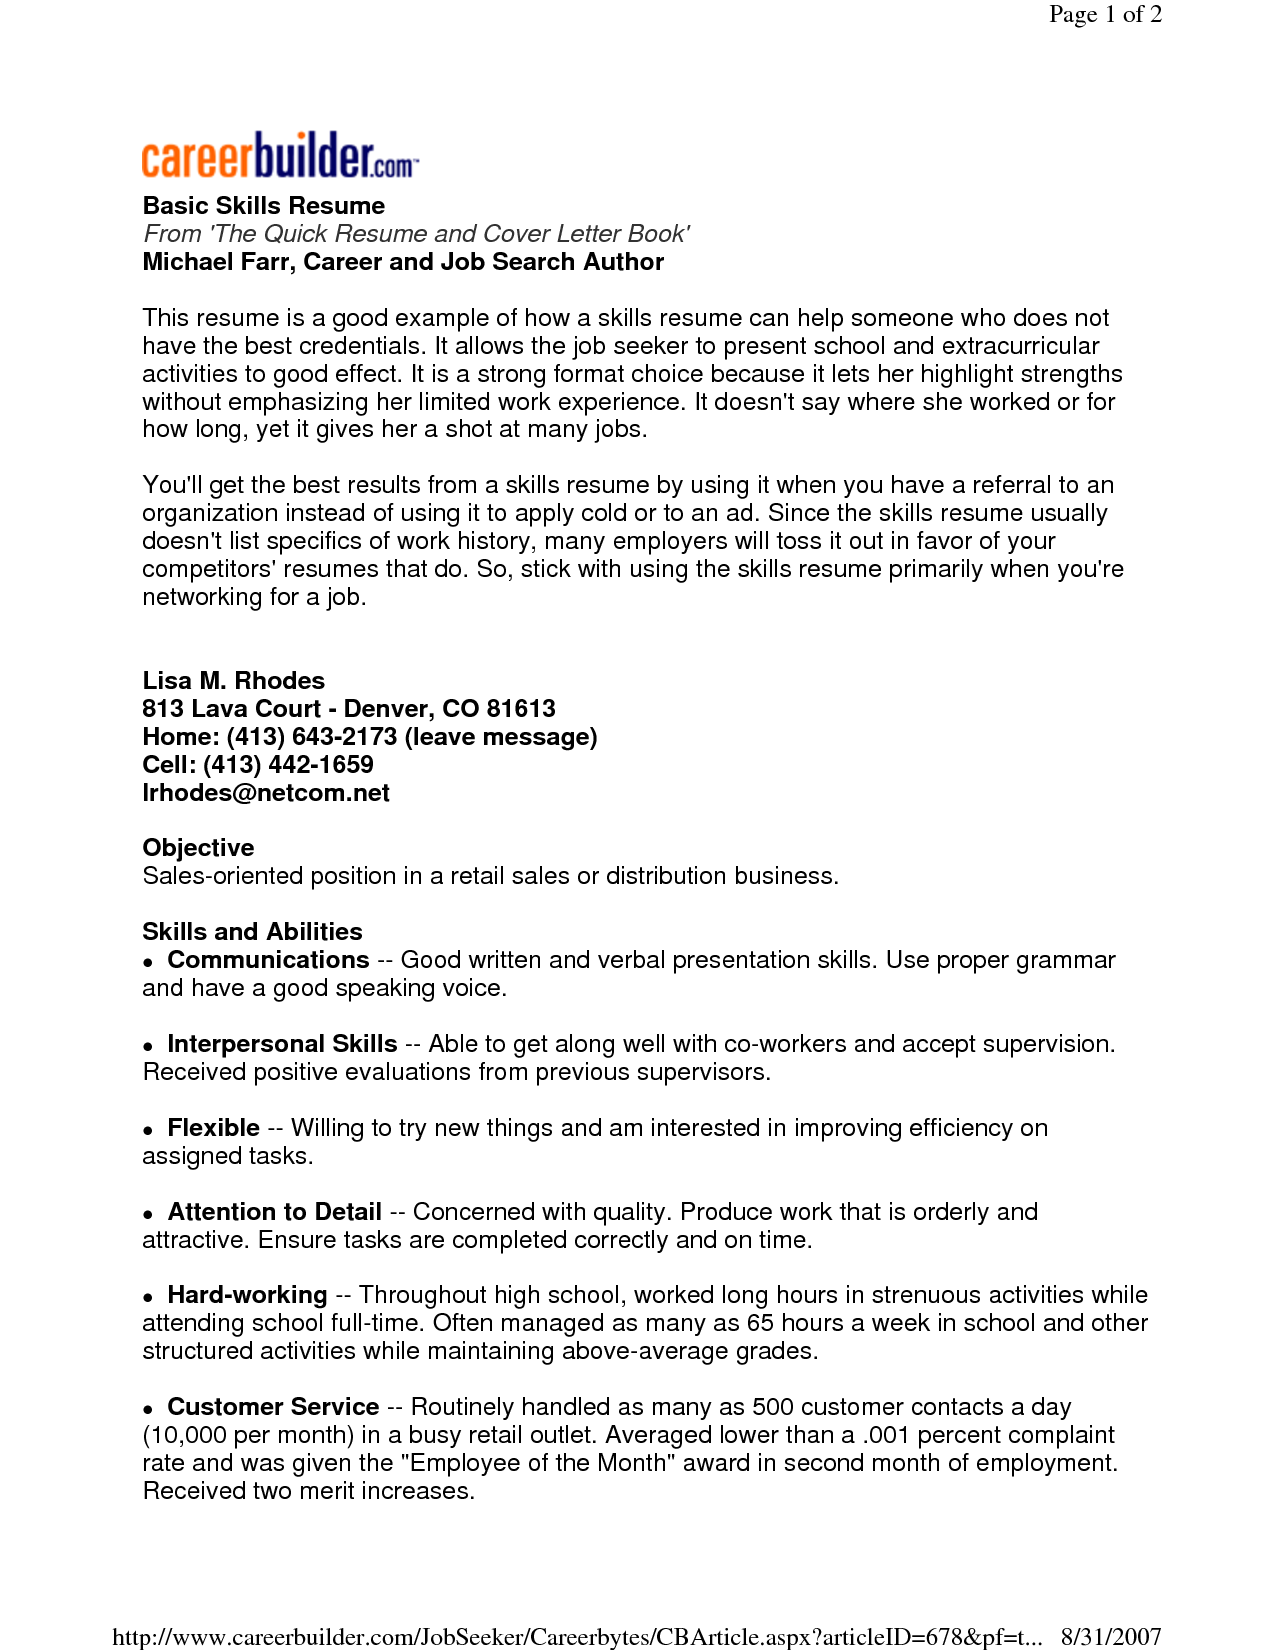 Find Here The Sample Resume That Best Fits Your Profile In Order To